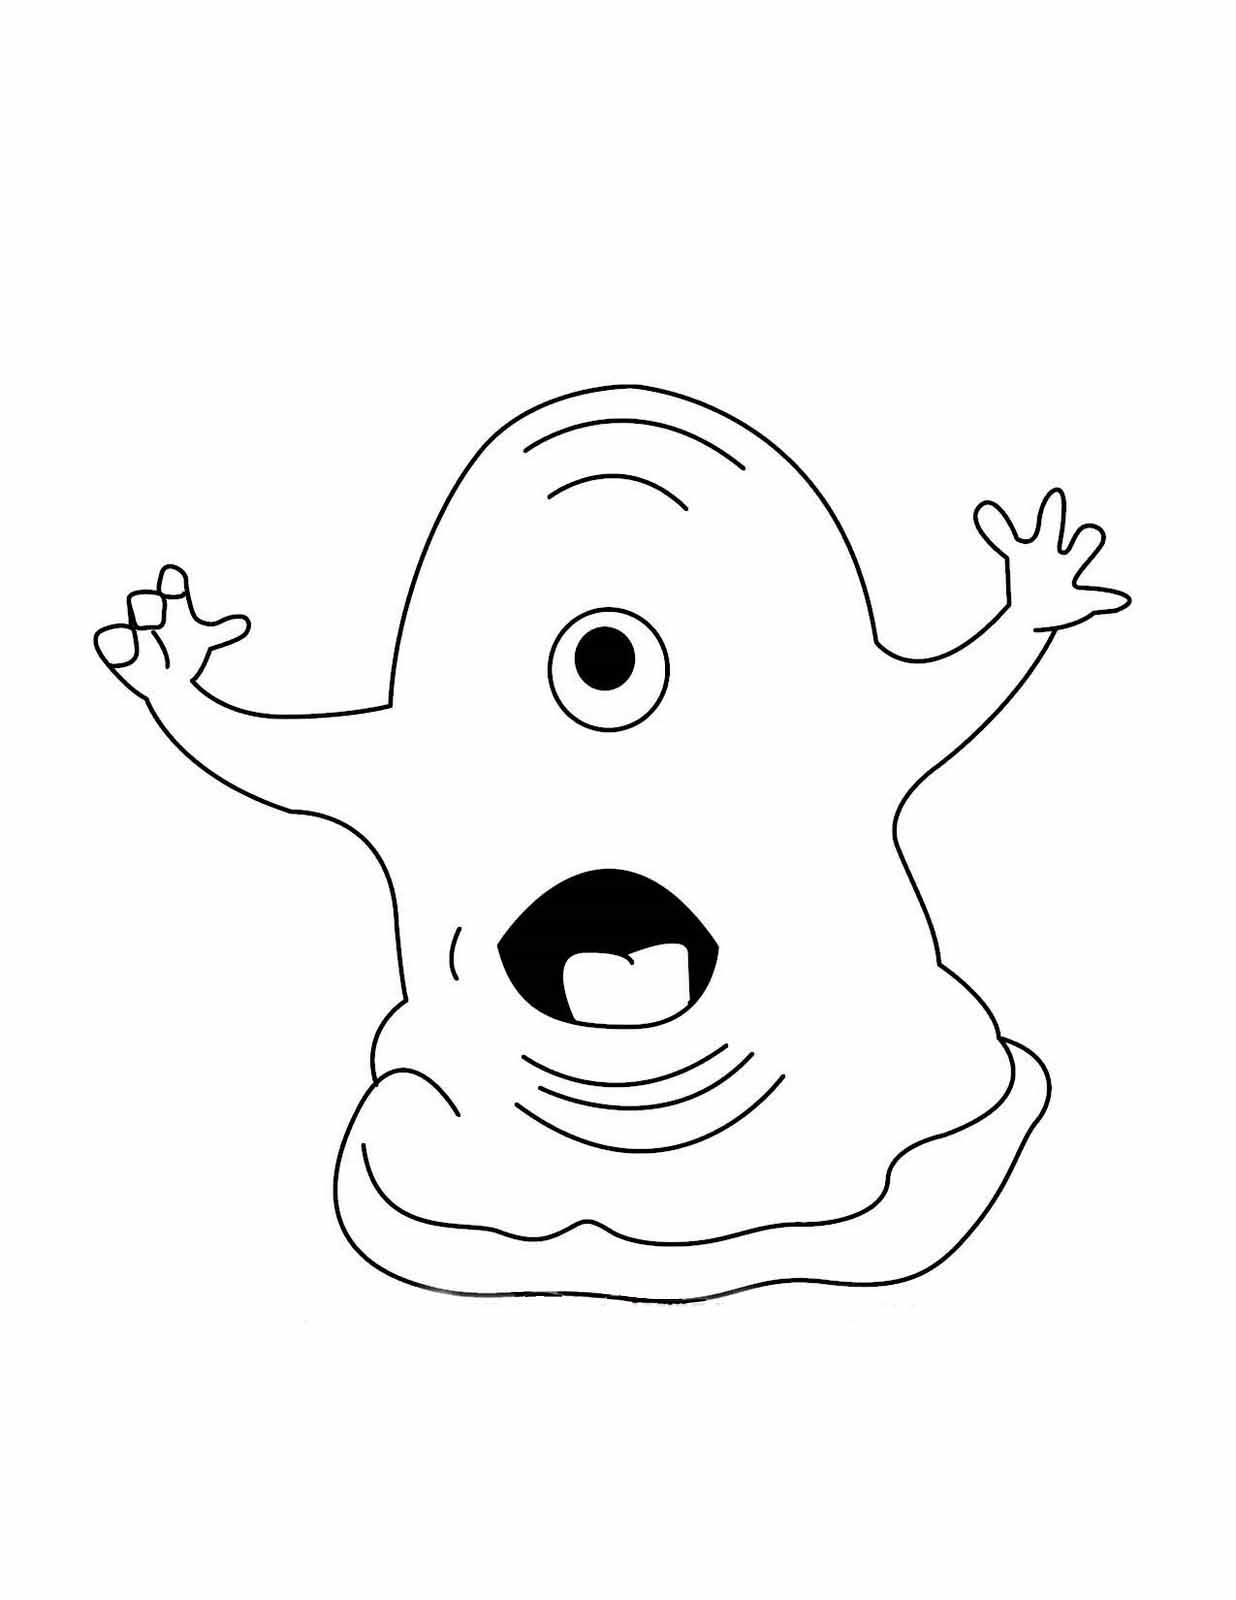 Alien Coloring Pages Inspiration Alien Coloring Pages 4  Coloring Kids Design Decoration